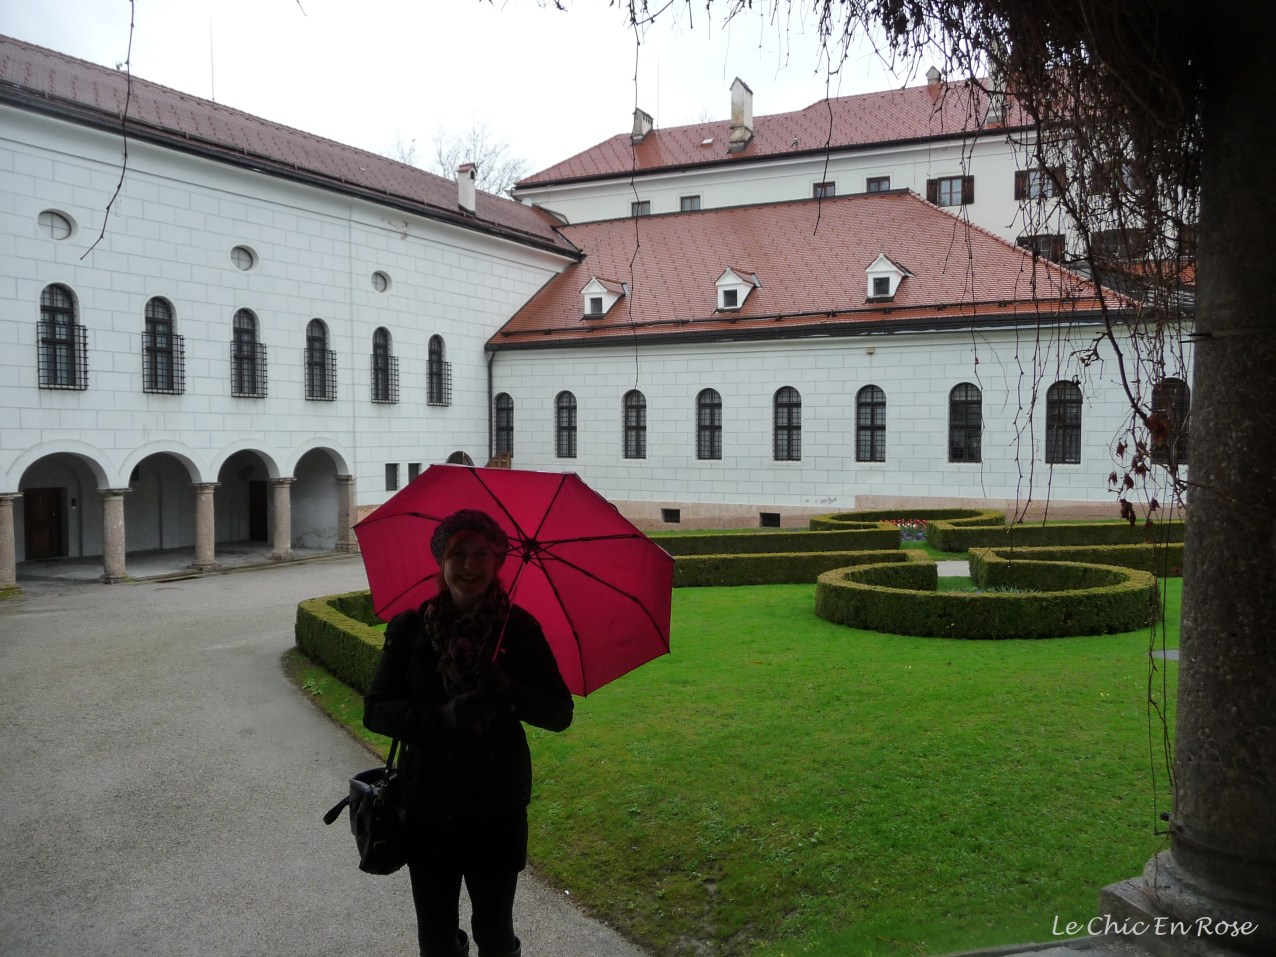 """The umbrella that I had purchased earlier in the day in Innsbruck got a good workout. Umbrella is """"Regenschirm"""" in German. I did have to ask for one in faltering German!"""